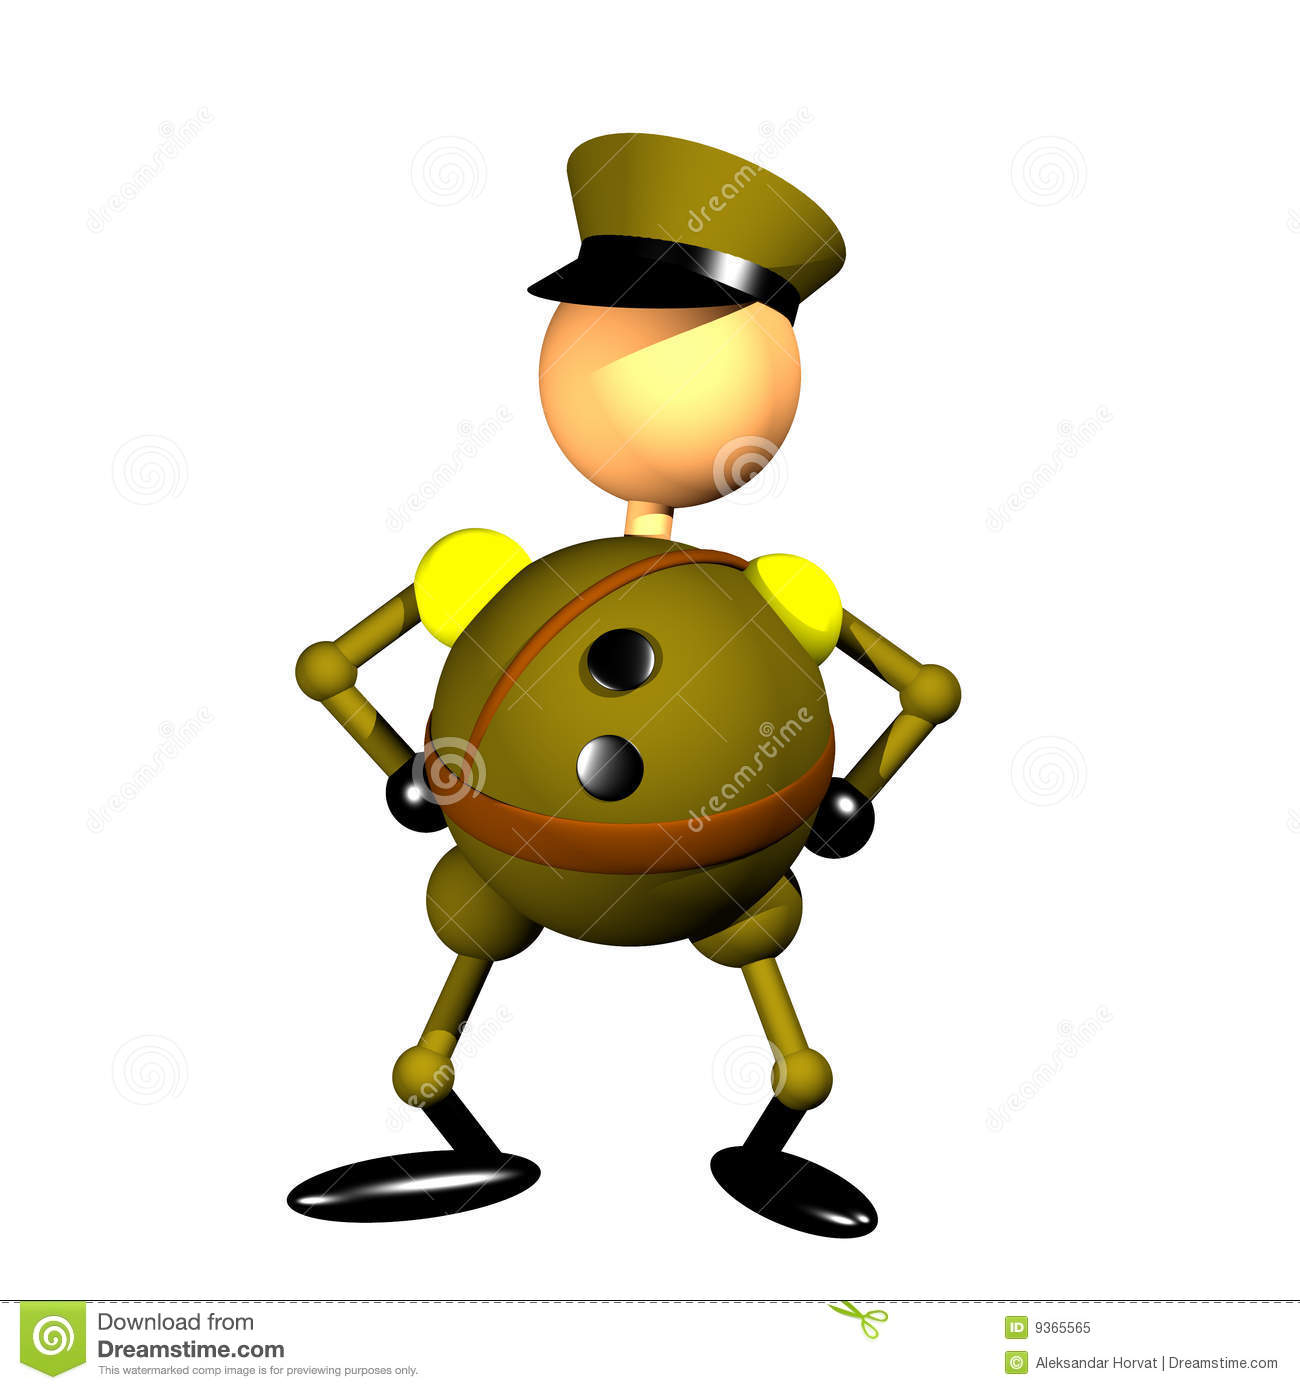 Military Officer Clipart Royalty Free Stock Photo.